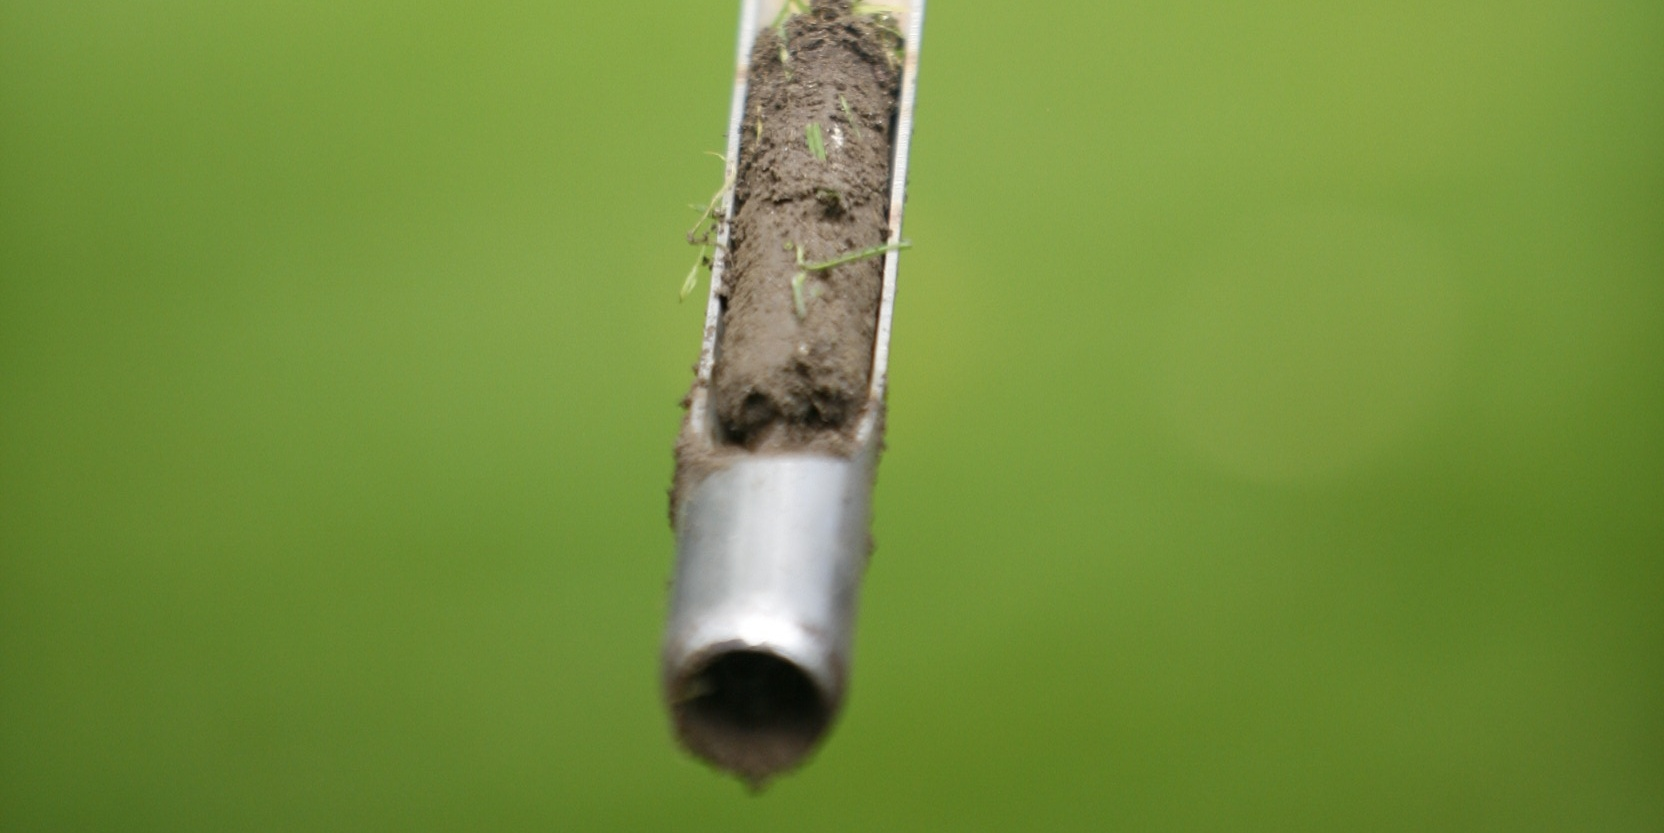 A soil probe is a device that you can manually push into your soil several inches deep to extract a small core sample, similar in size to your index finger.